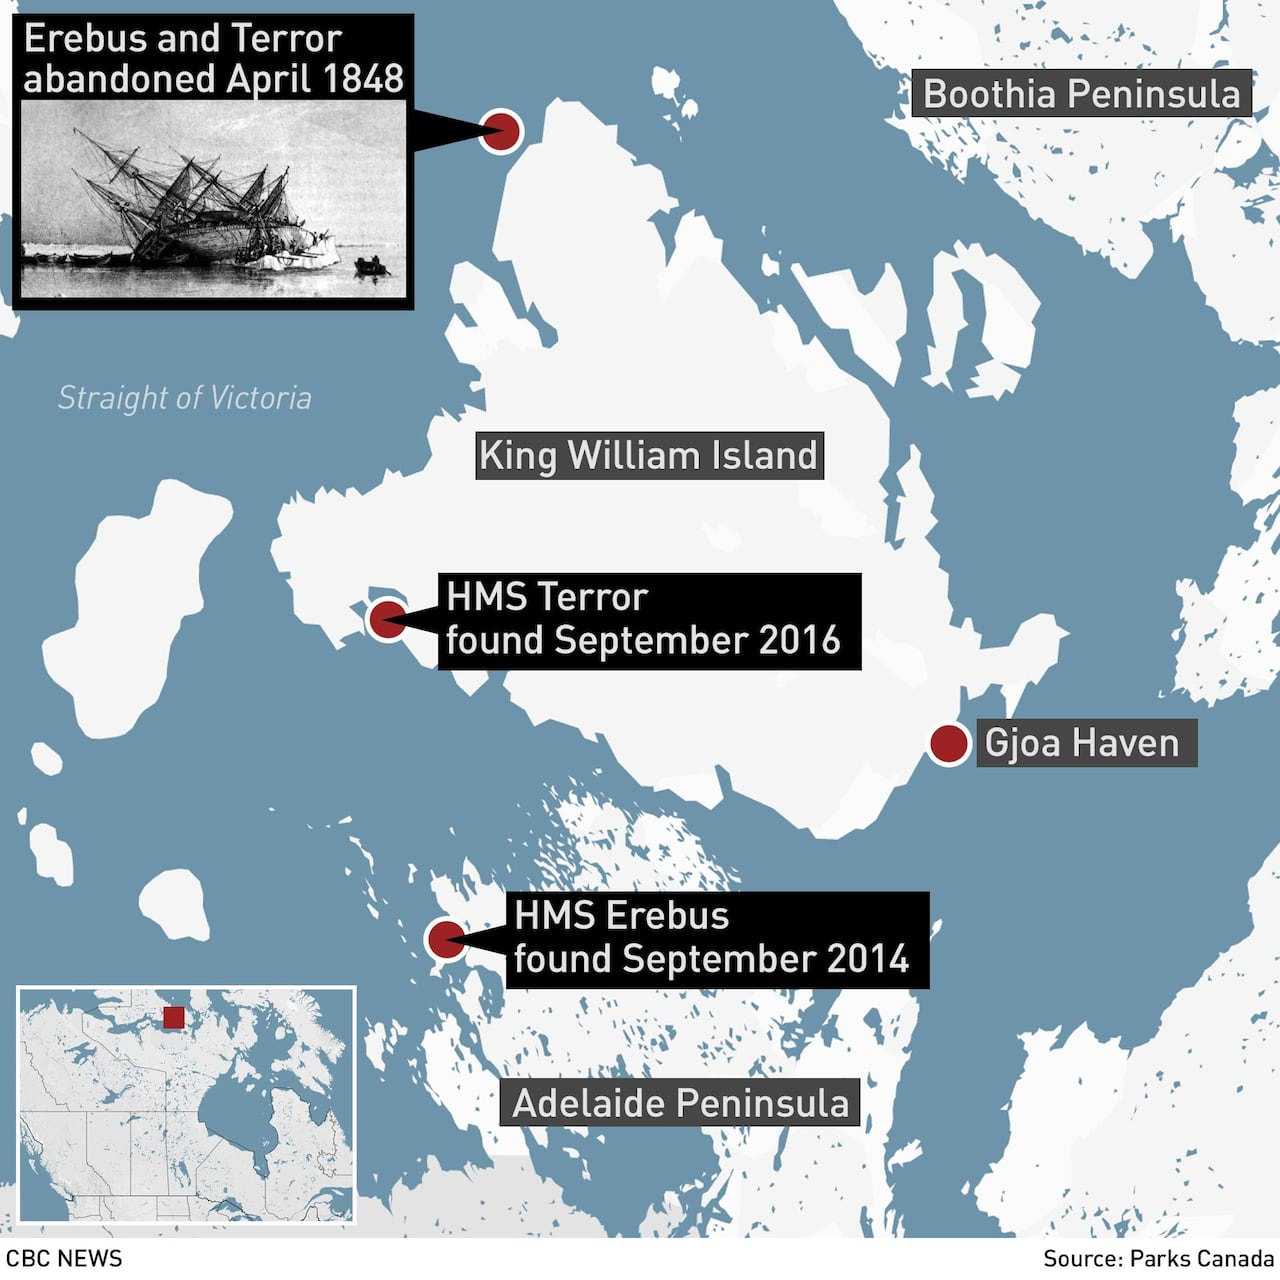 HMS Terror's 'incredible' condition may offer new clues to Franklin Expedition mystery